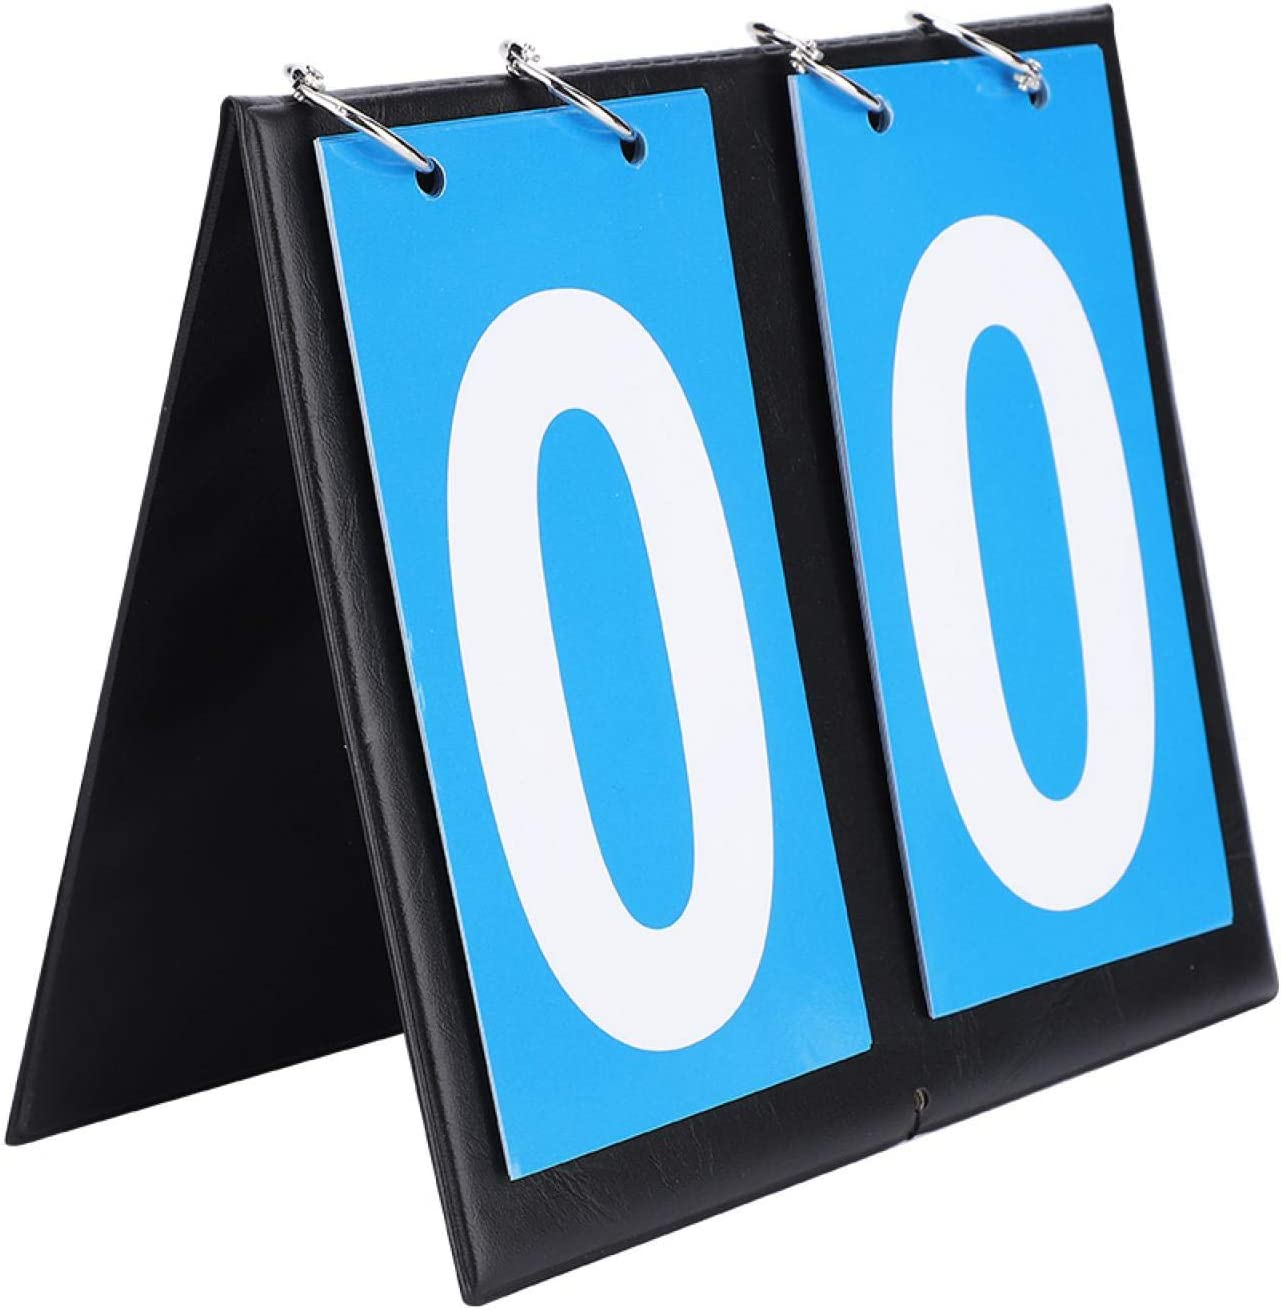 Genuine Free Shipping Basketball Scoreboard Pliable and Durable To Carry Easy Finally popular brand Sto